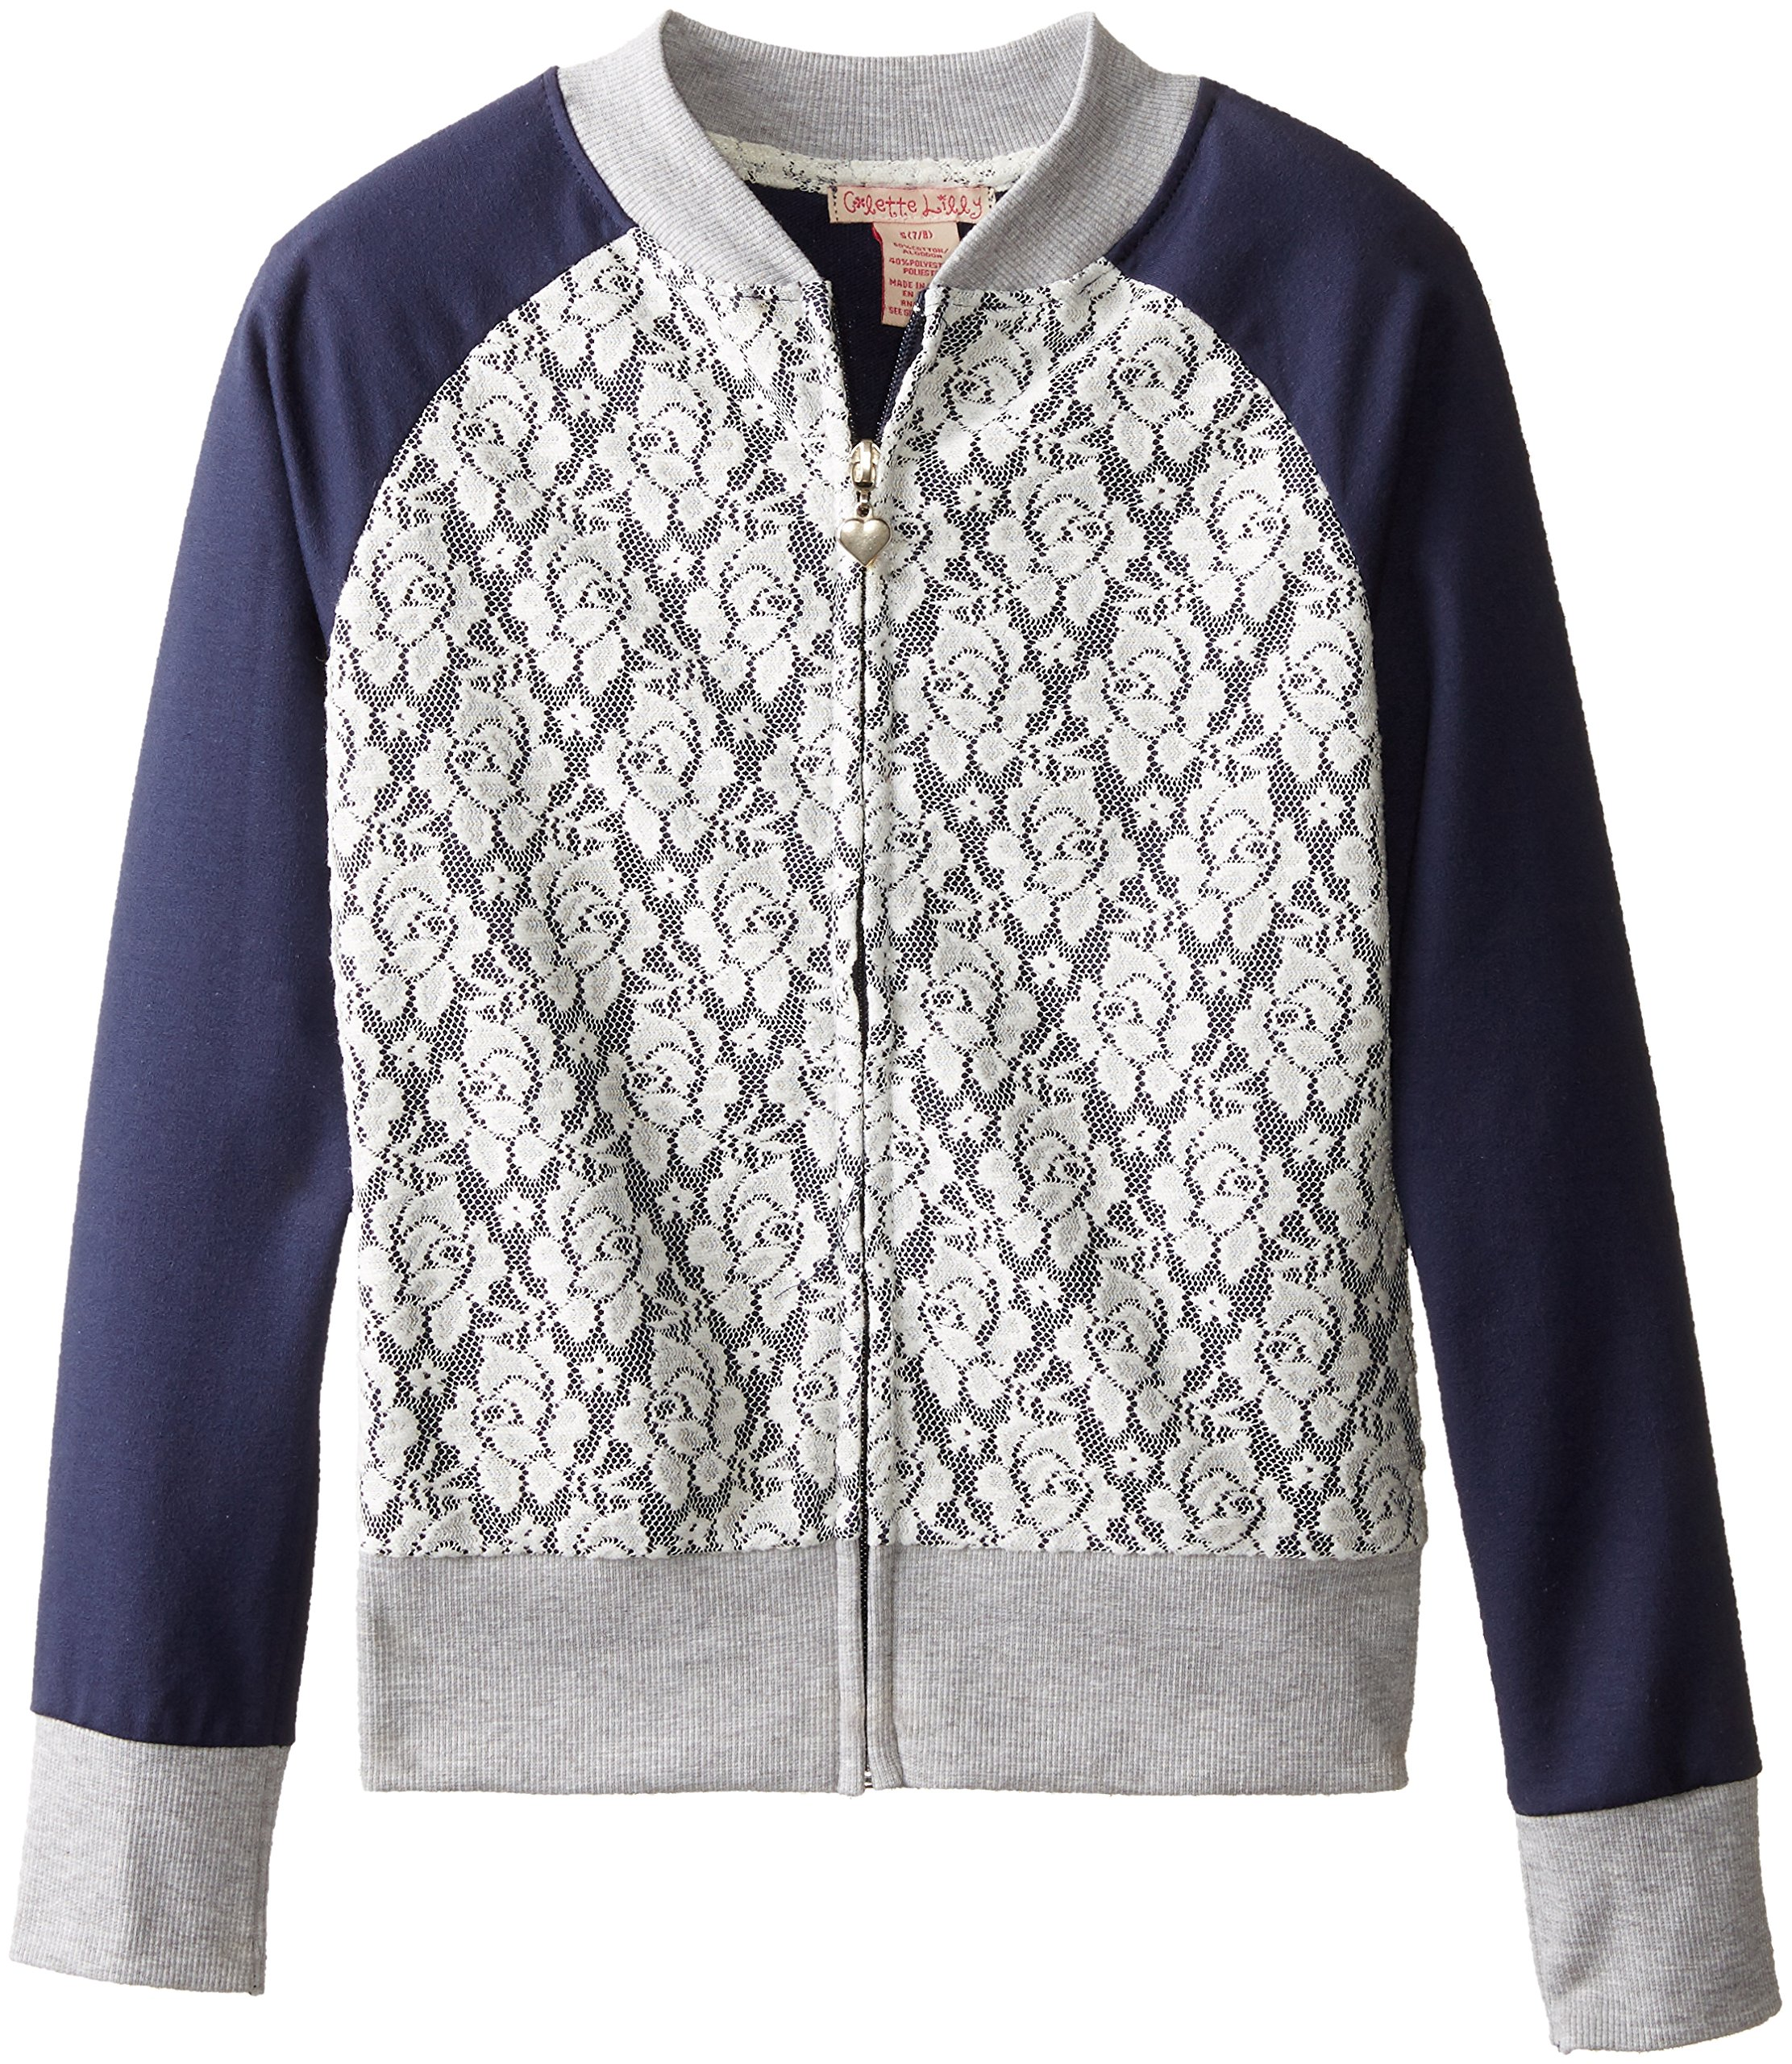 Colette Lilly Big Girls' Lace Front Bomber Style Sweatshirt,Peacoat,Small